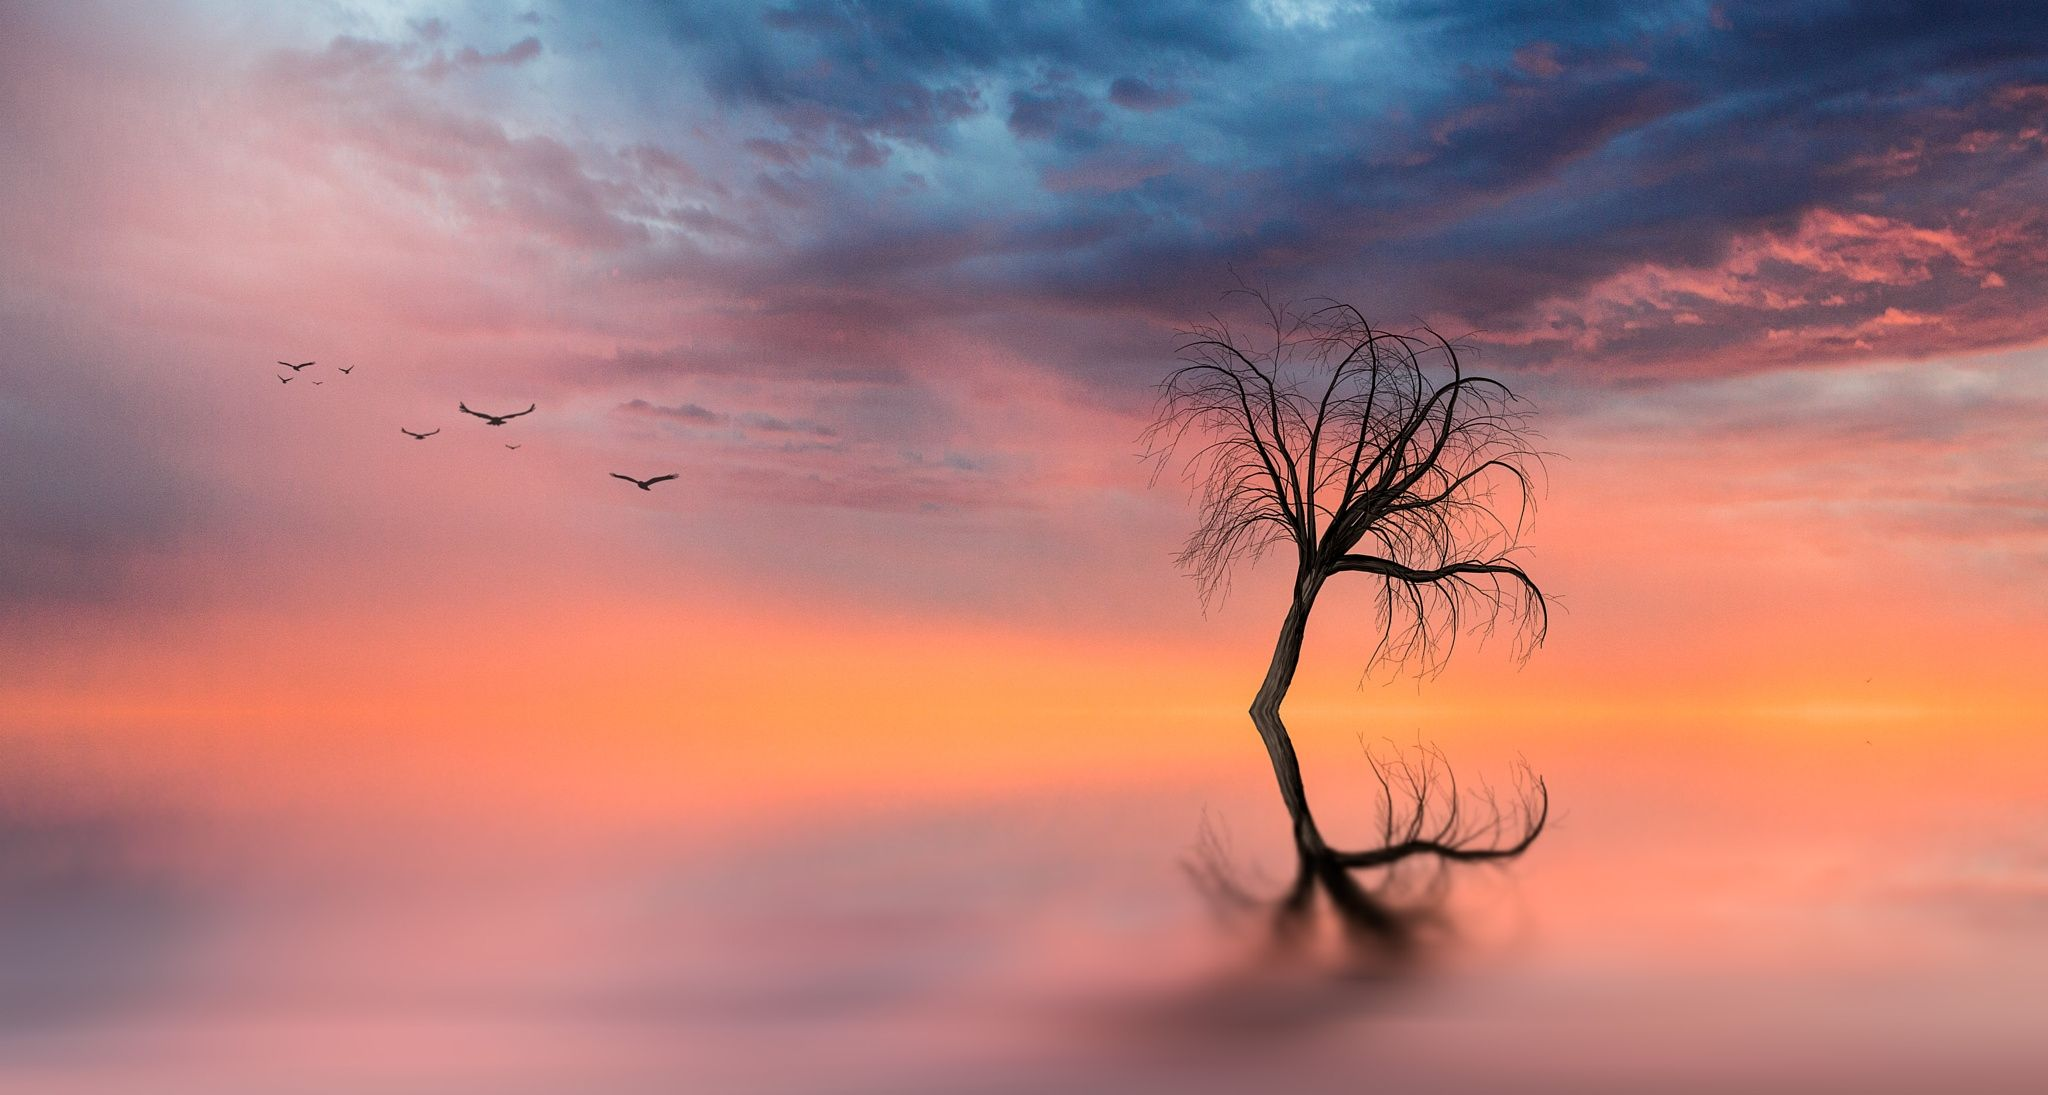 Calm - Creative Art - A calmness on the water creates a reflection from the dead tree. A dream.